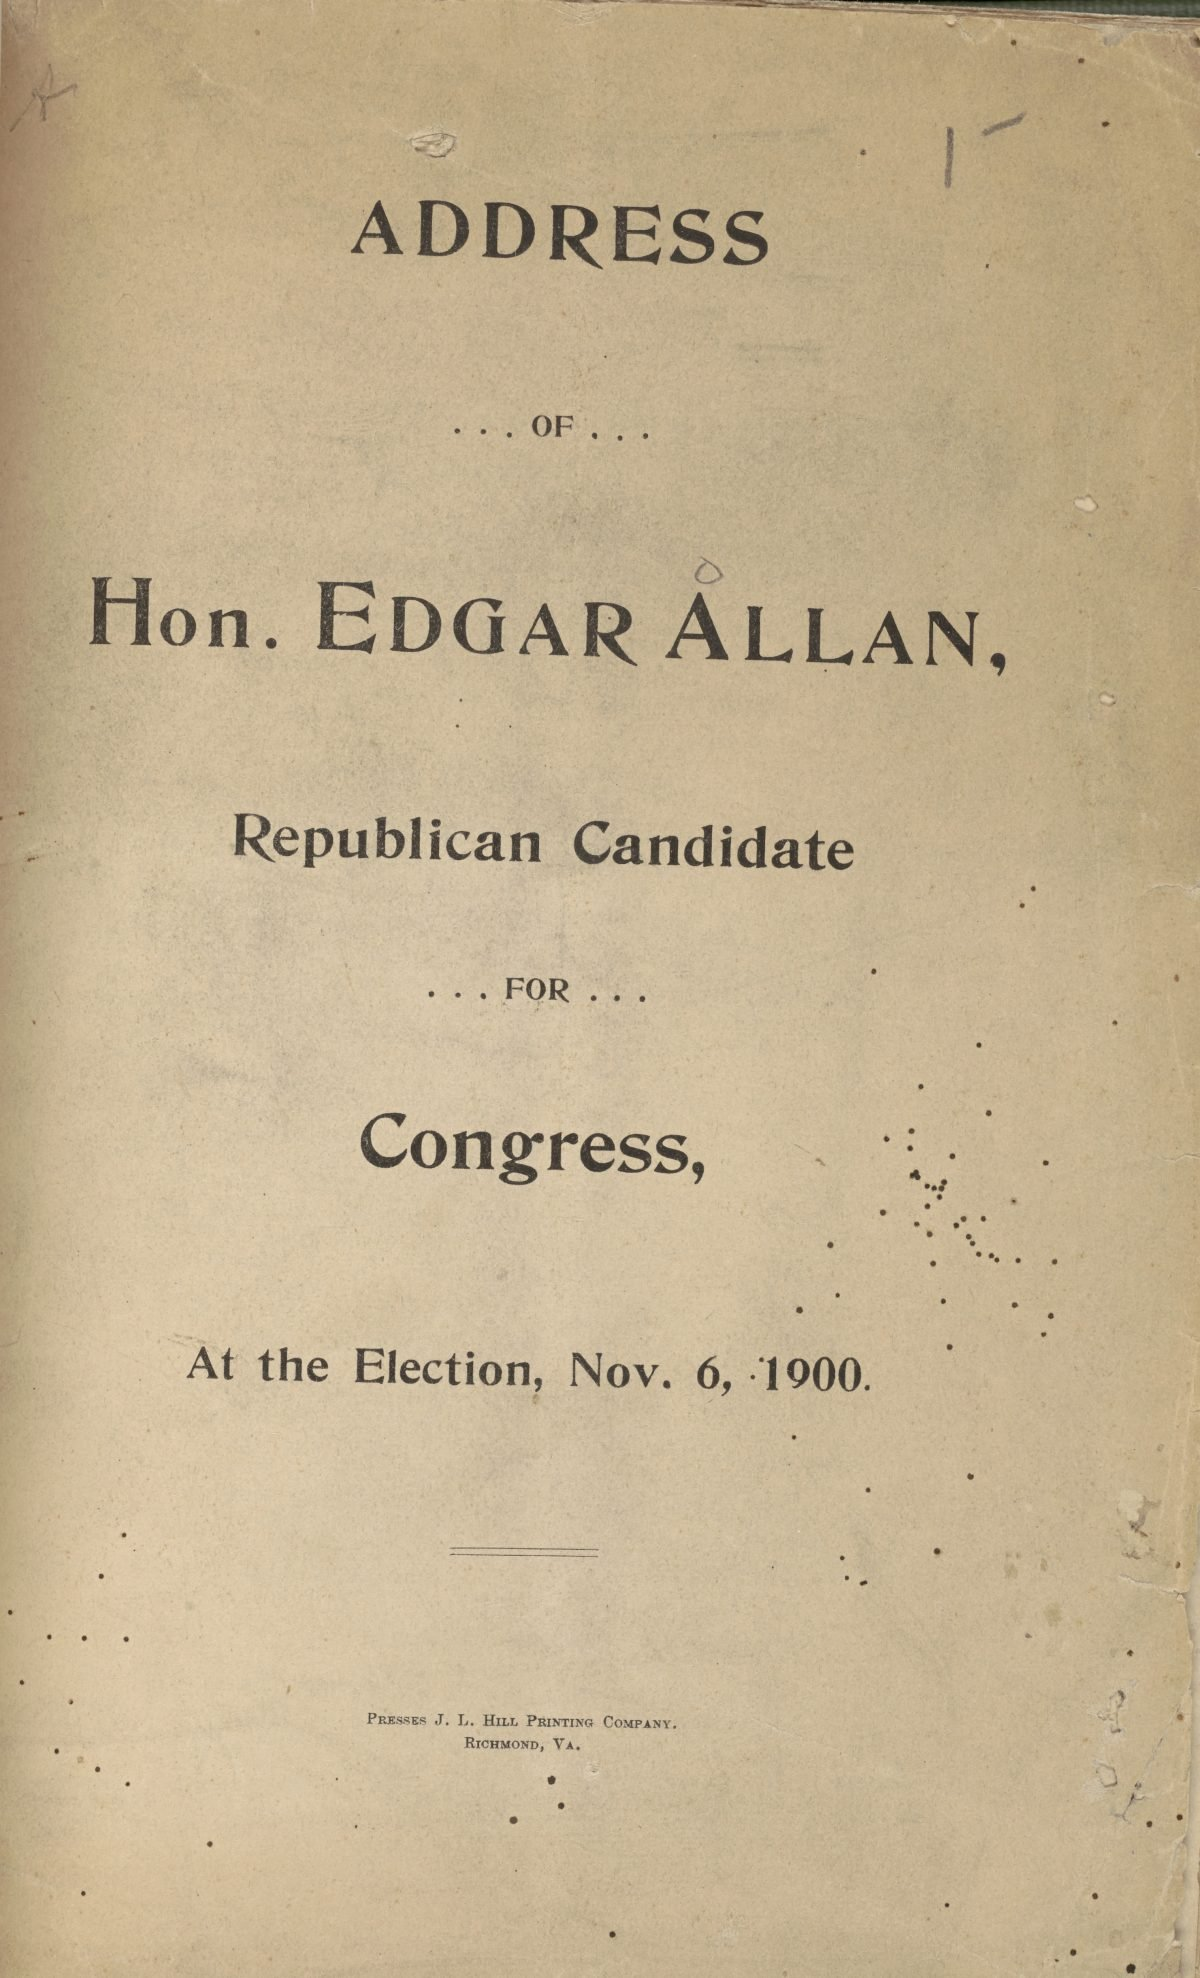 Address of Hon. Edgar Allan